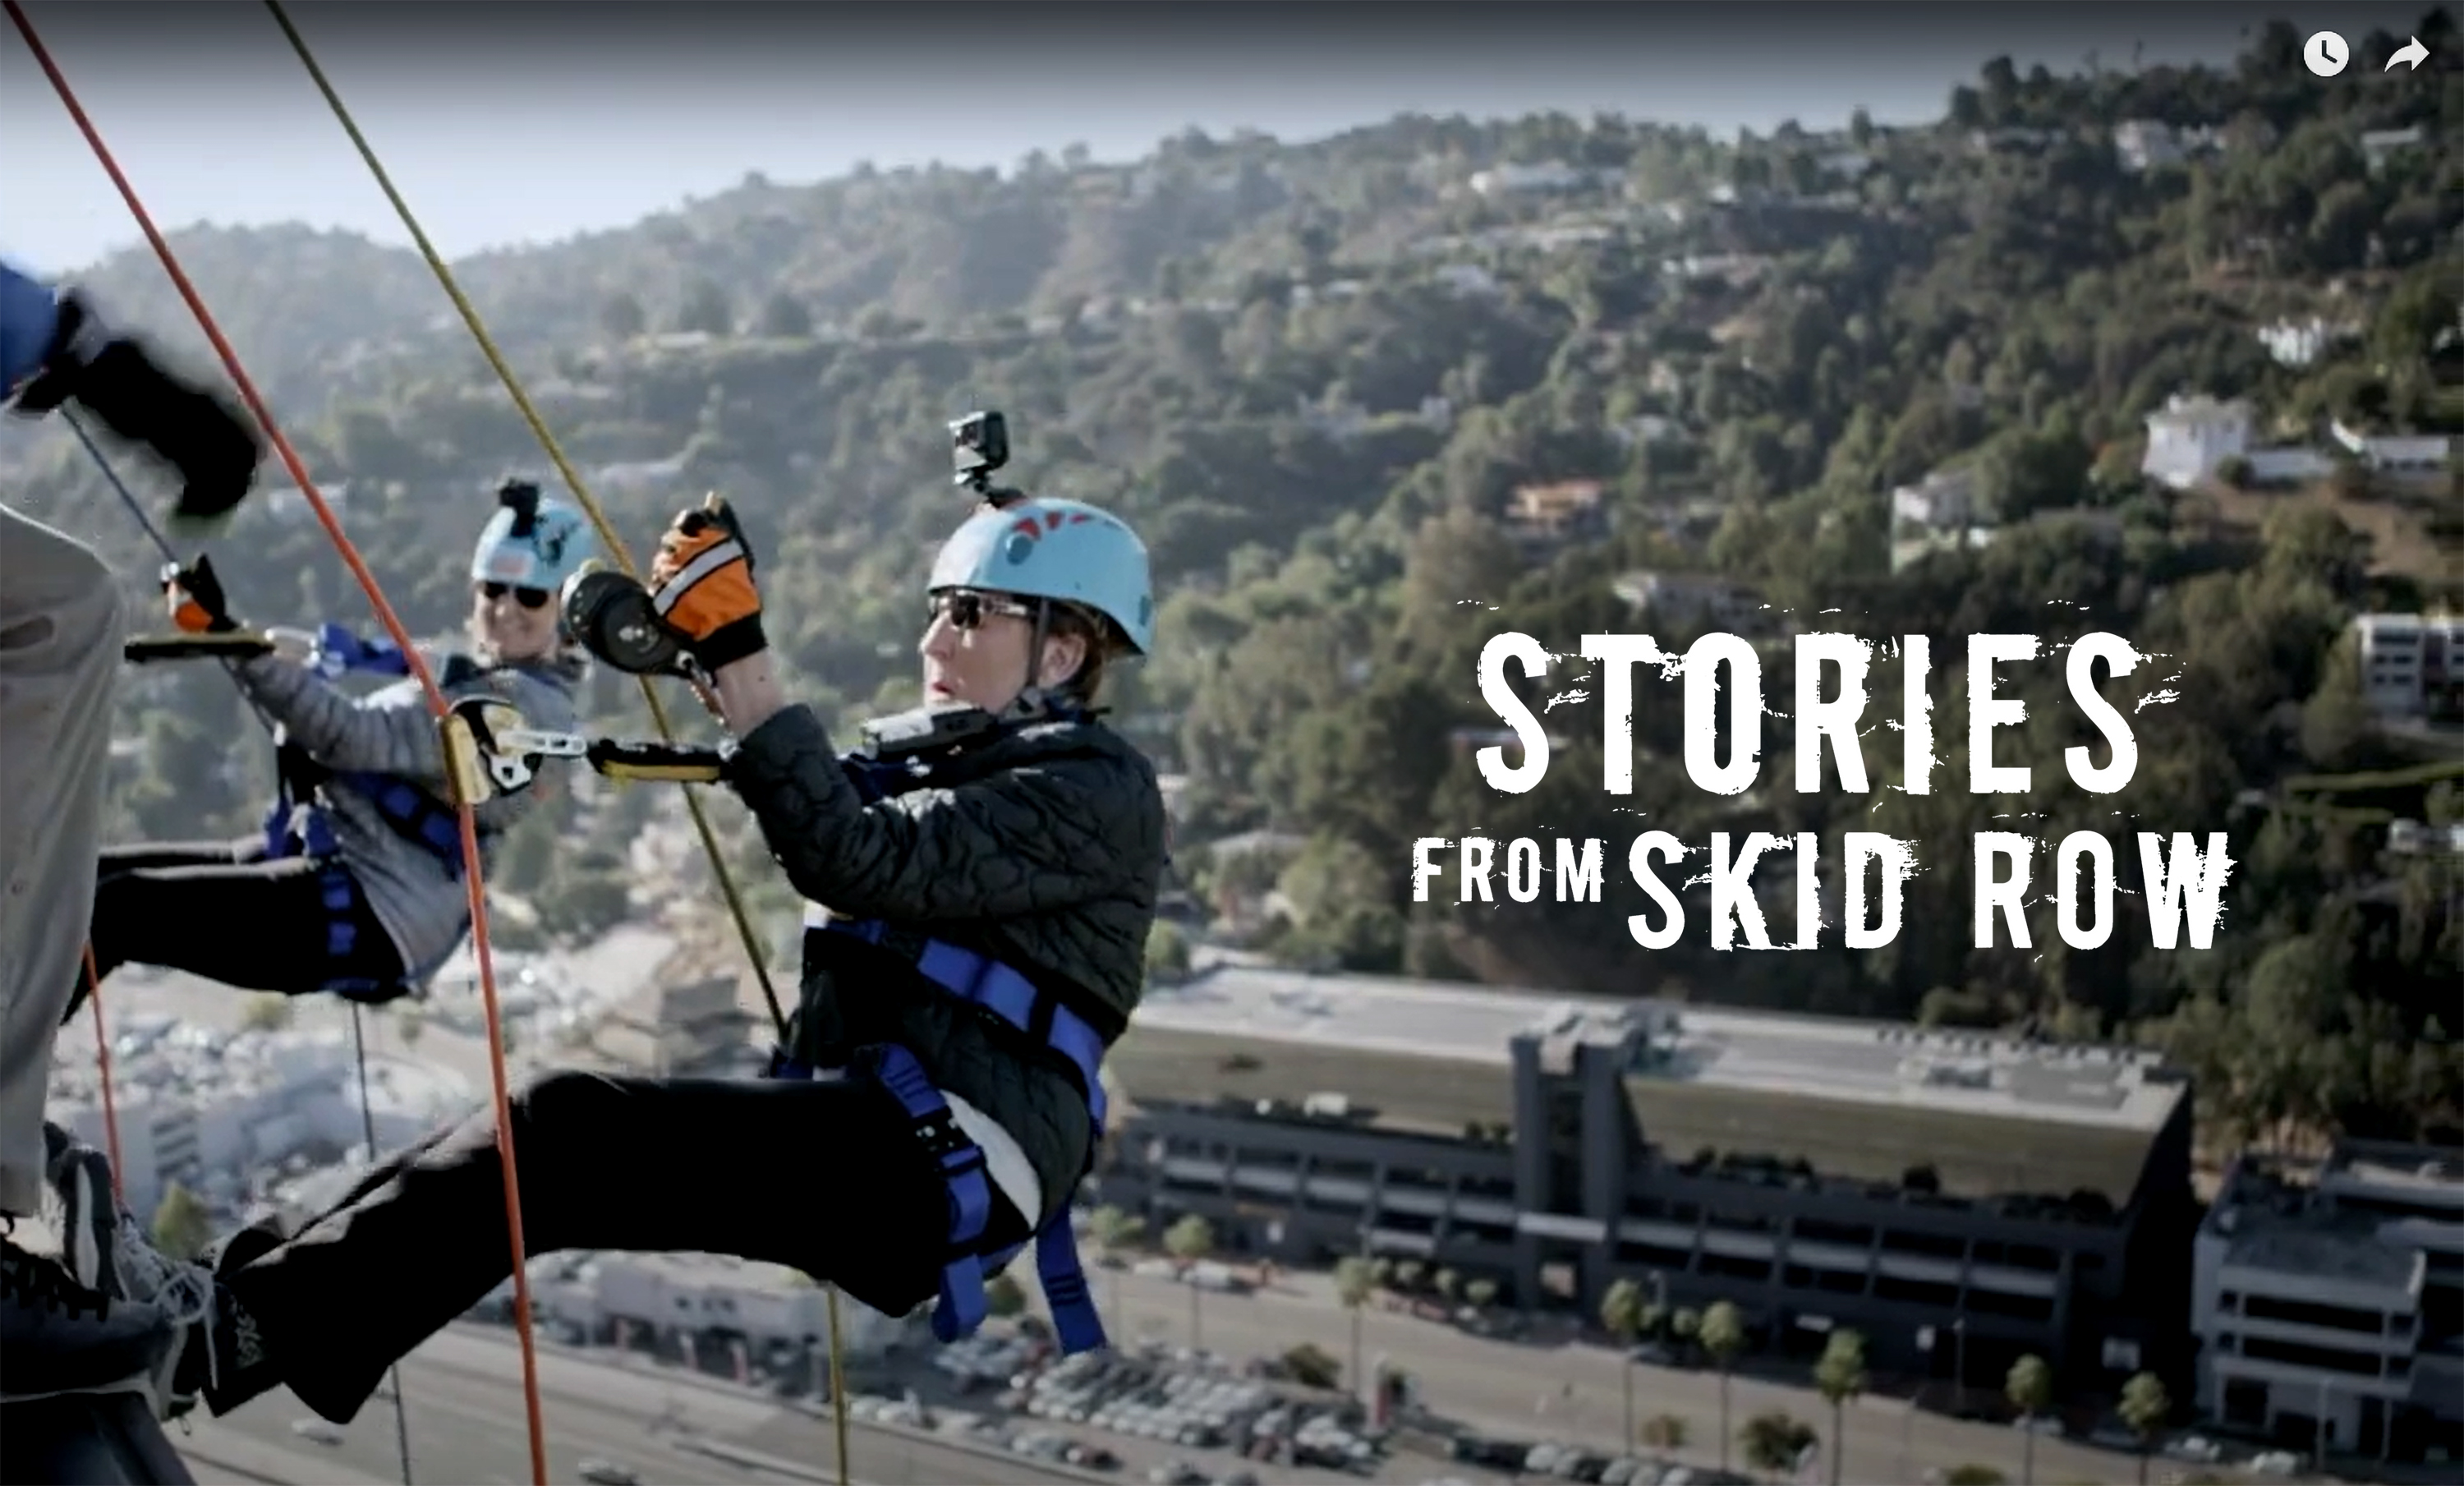 Stories from Skid Row - Betty's Story